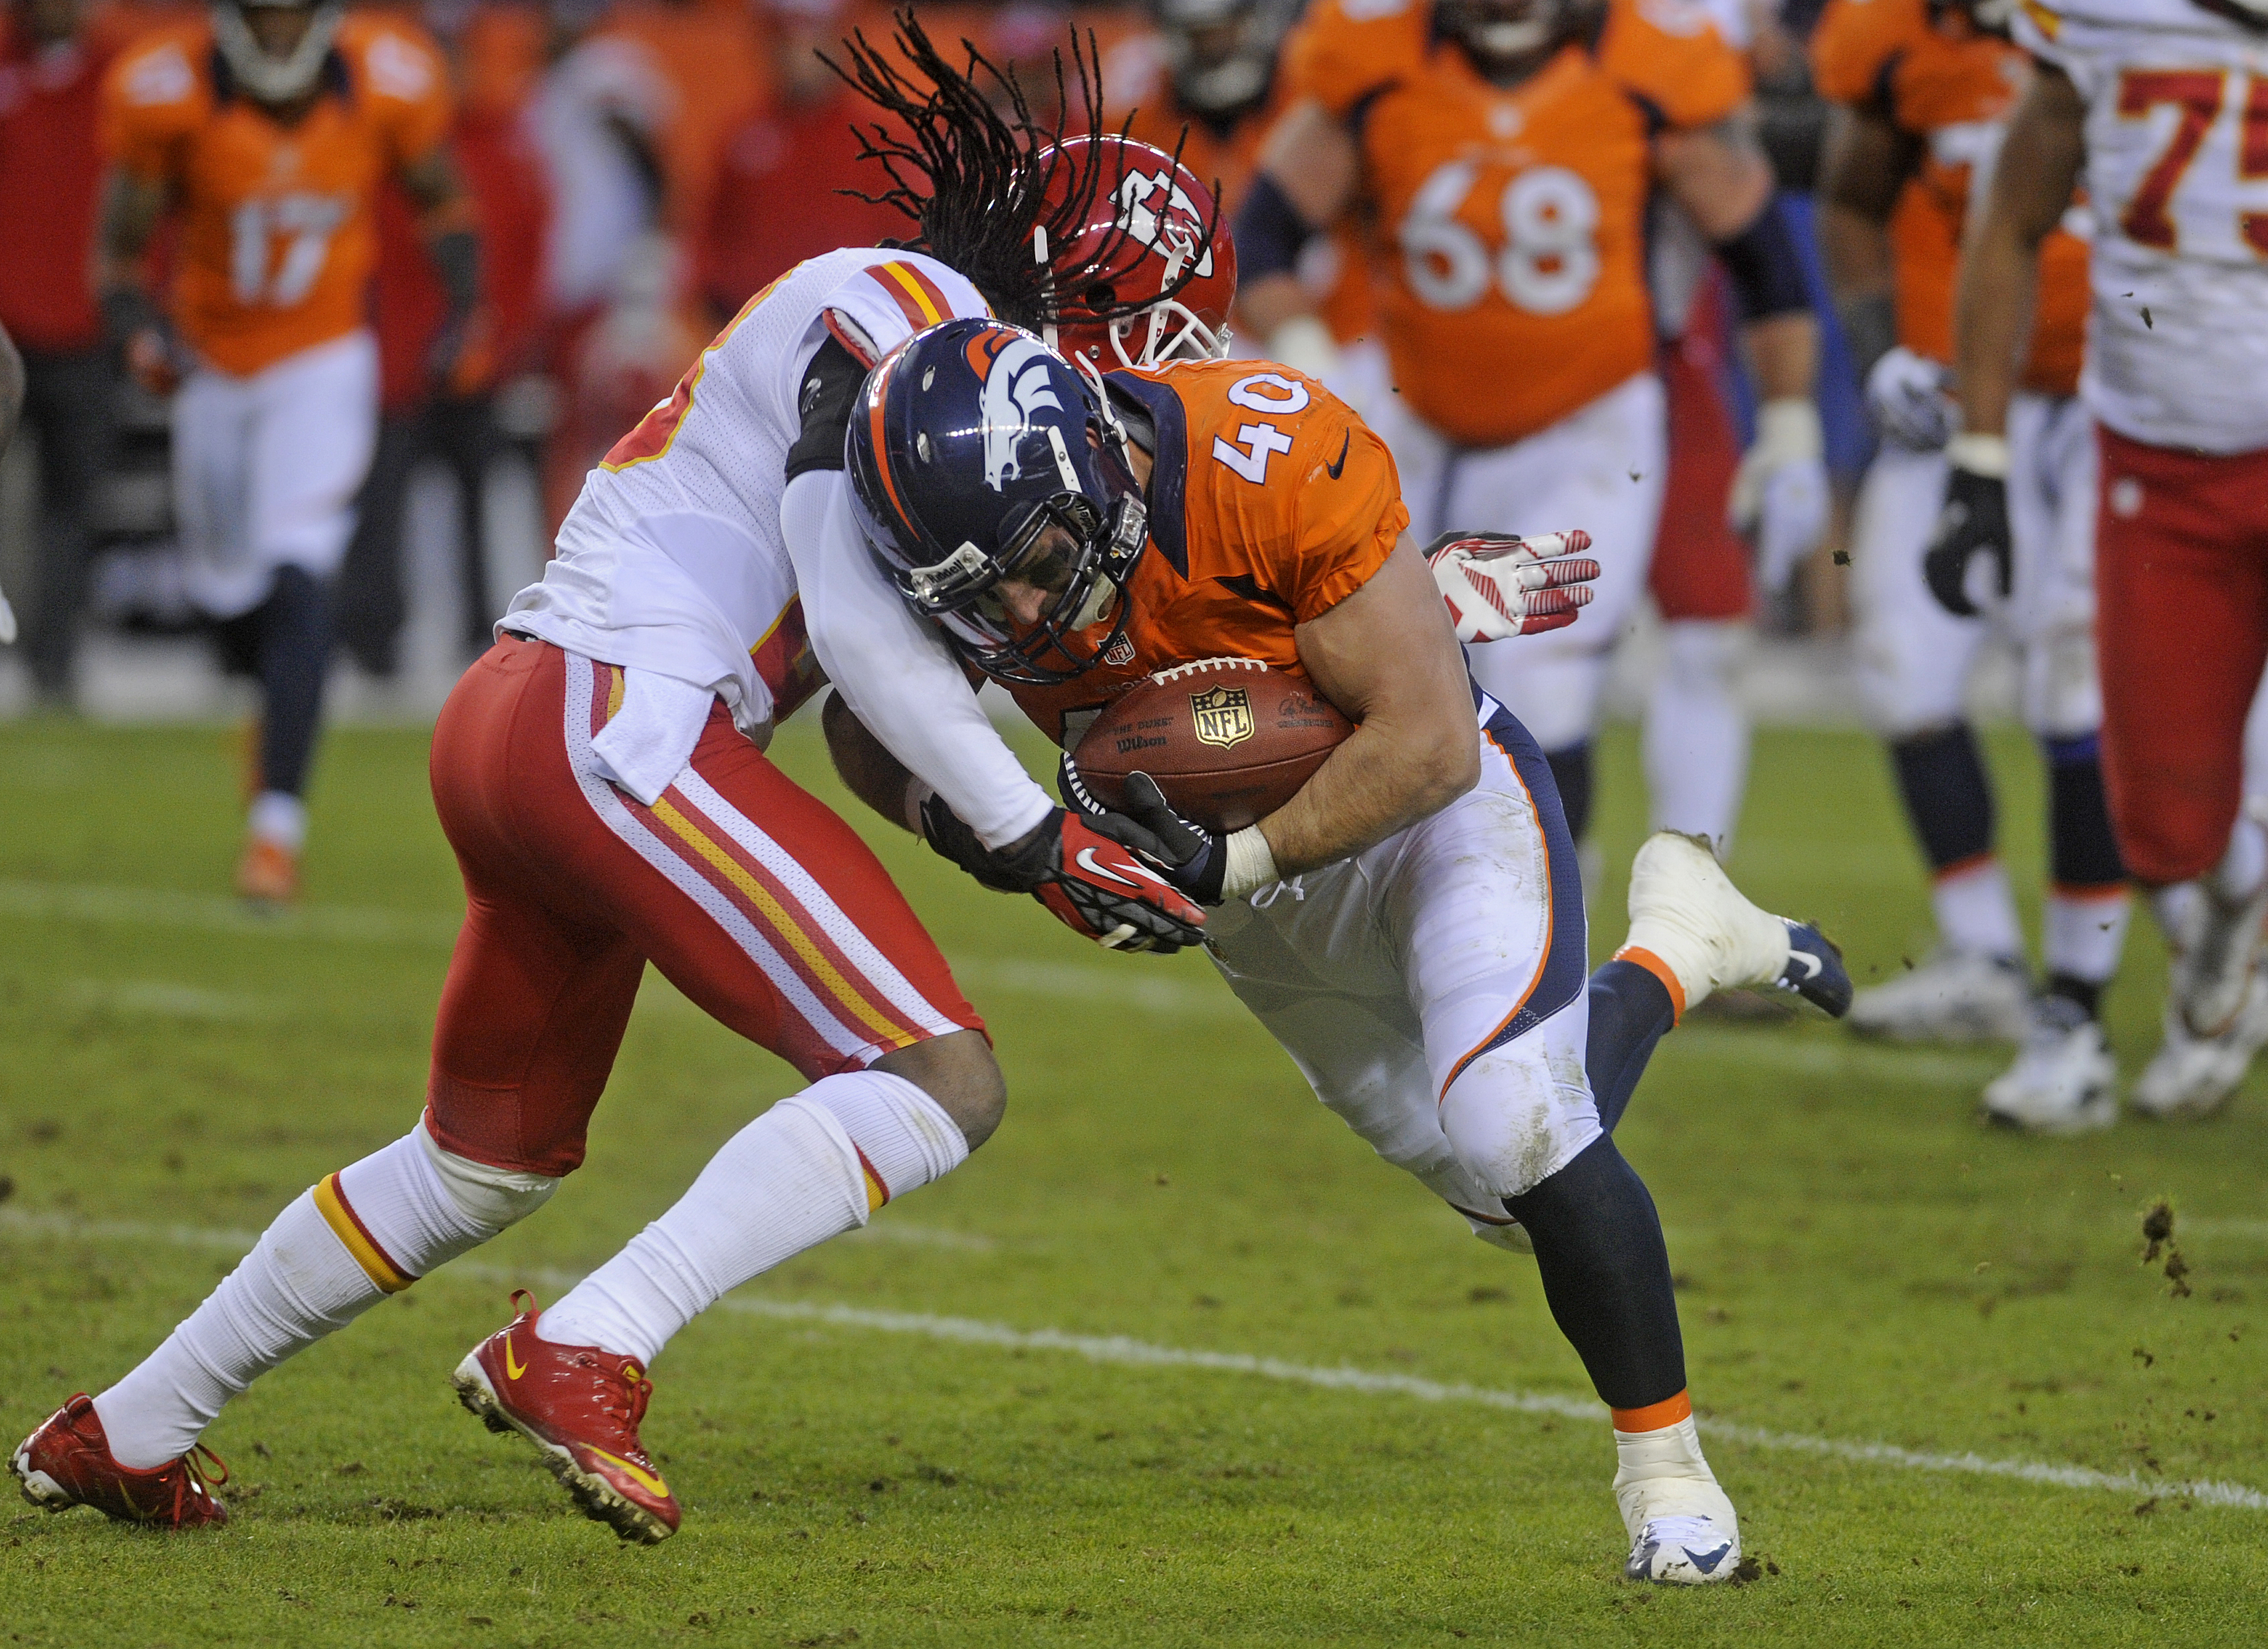 Denver Broncos full back Jacob Hester during the fourth quarter of play against the Kansas City Chiefs Sunday December 30, 2012 at Sports Authority Field at Mile High in Denver, Colo.  -- Photo by Evan Semón, For CBS4